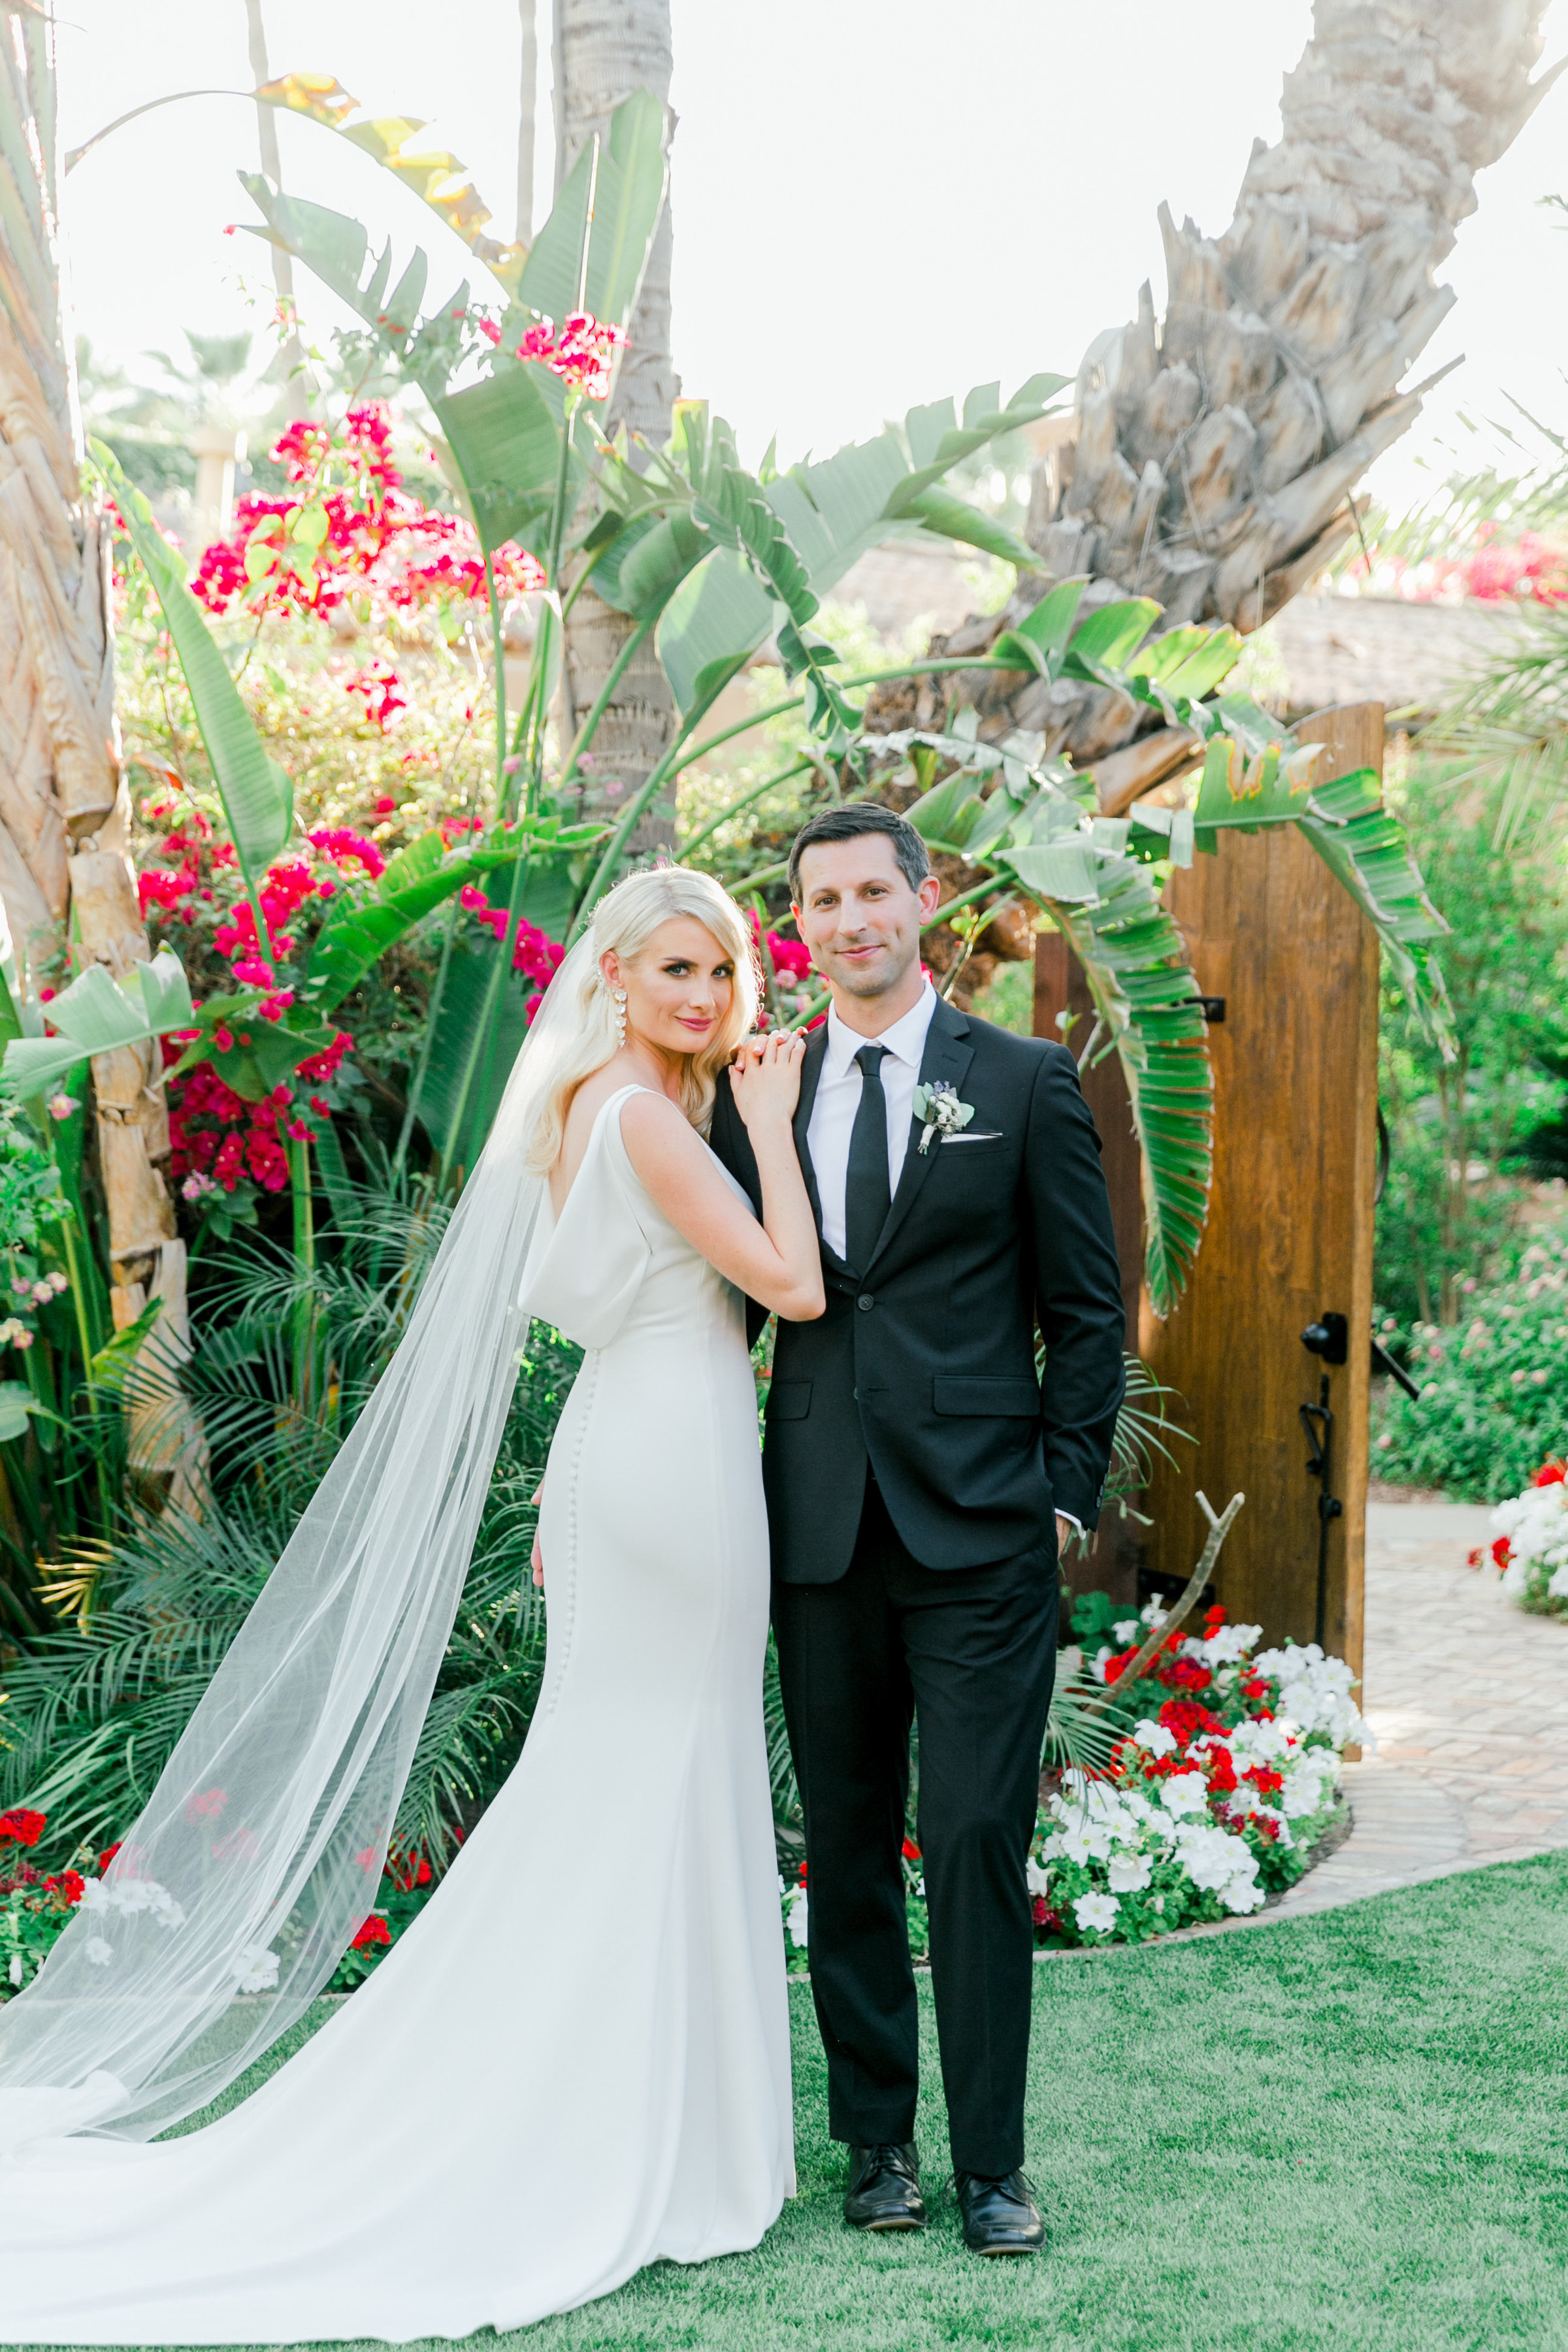 Karlie Colleen Photography - Arizona Wedding - Royal Palms Resort- Alex & Alex-131